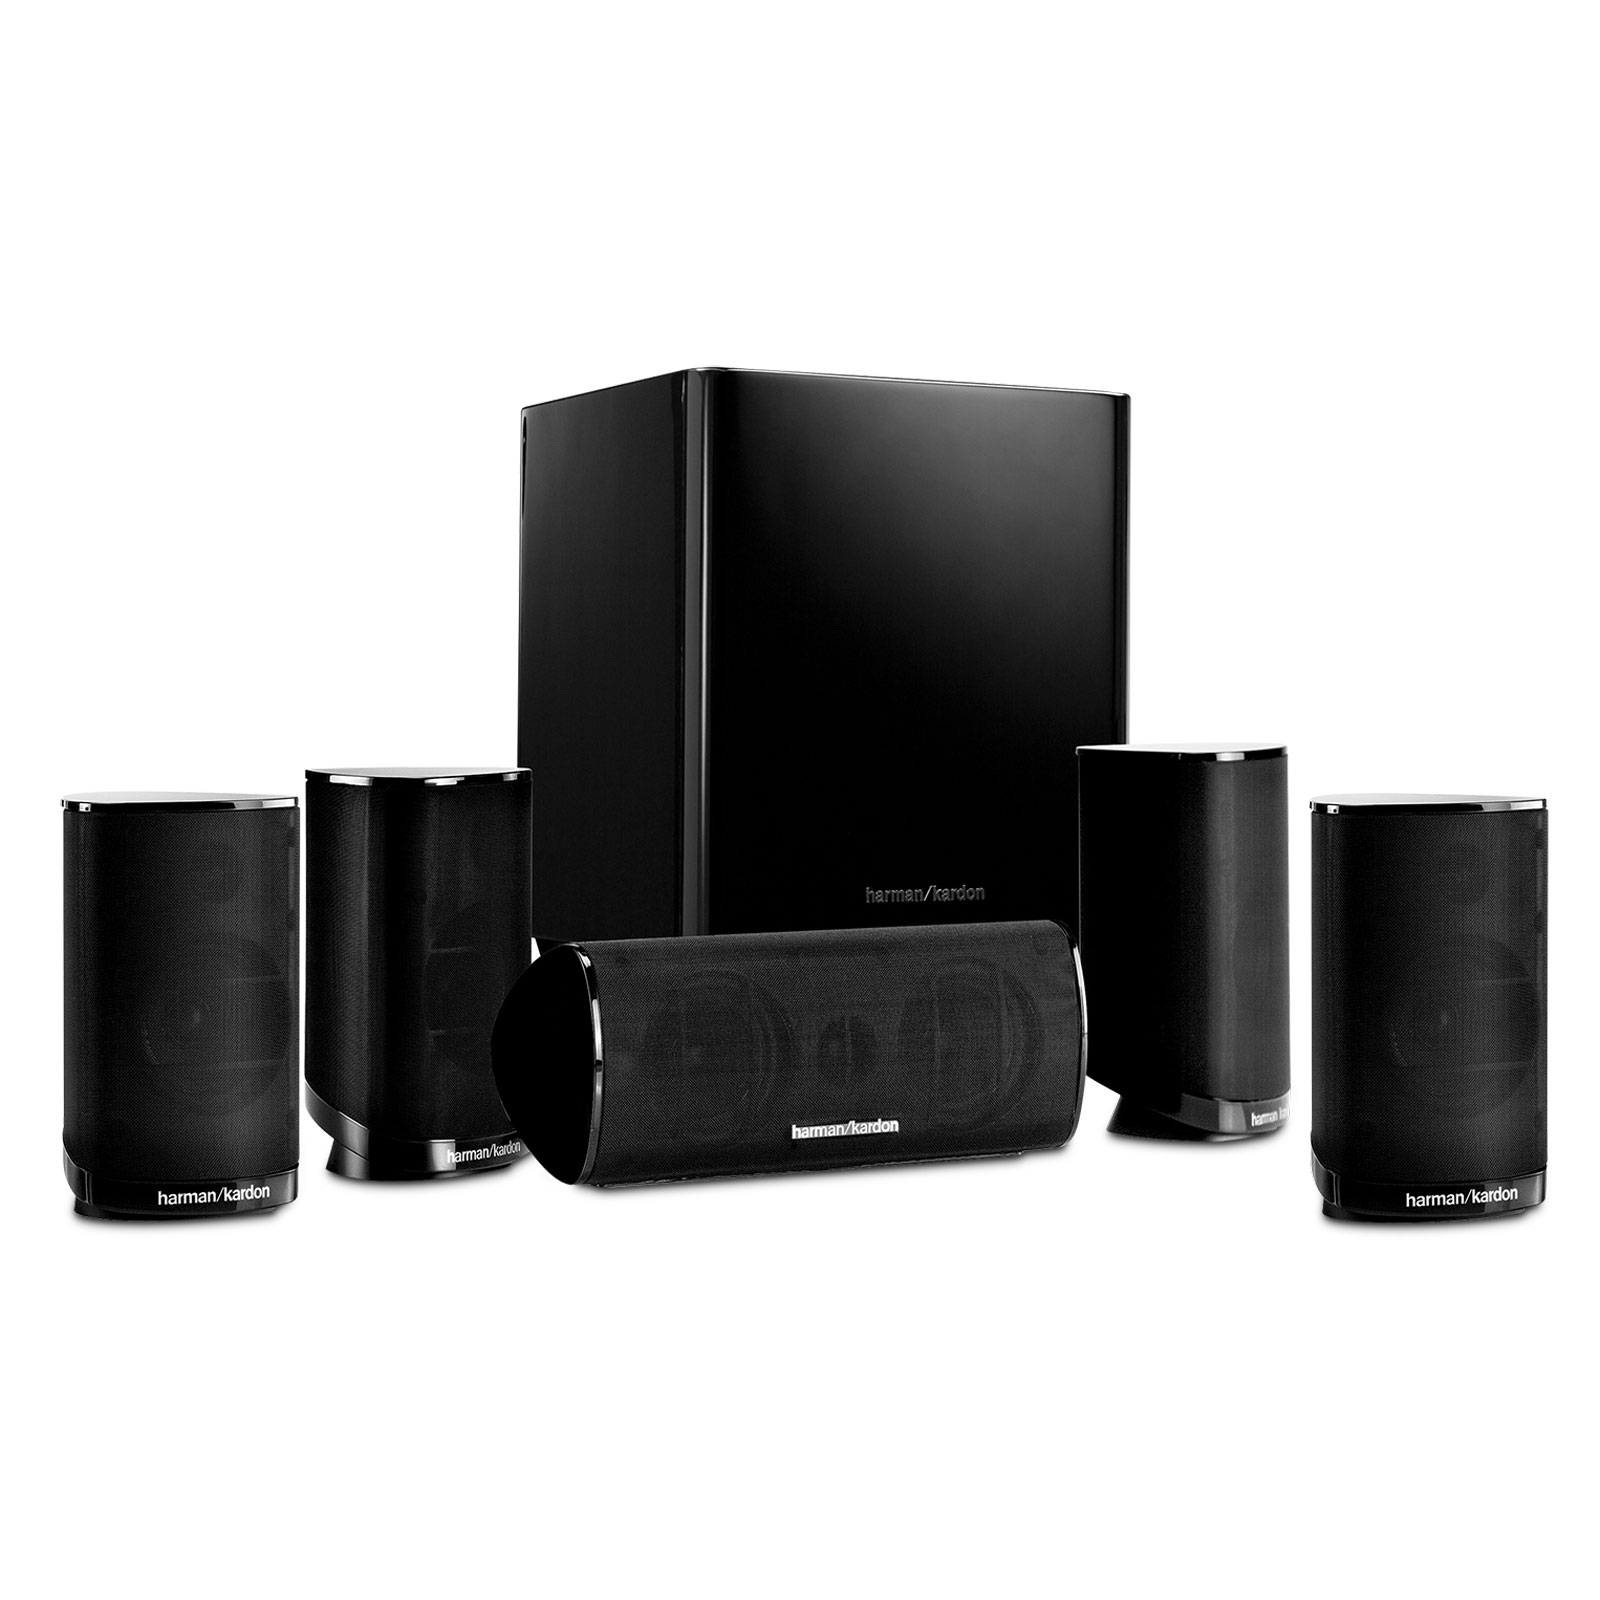 harman kardon hkts 9 noir enceintes hifi harman kardon. Black Bedroom Furniture Sets. Home Design Ideas